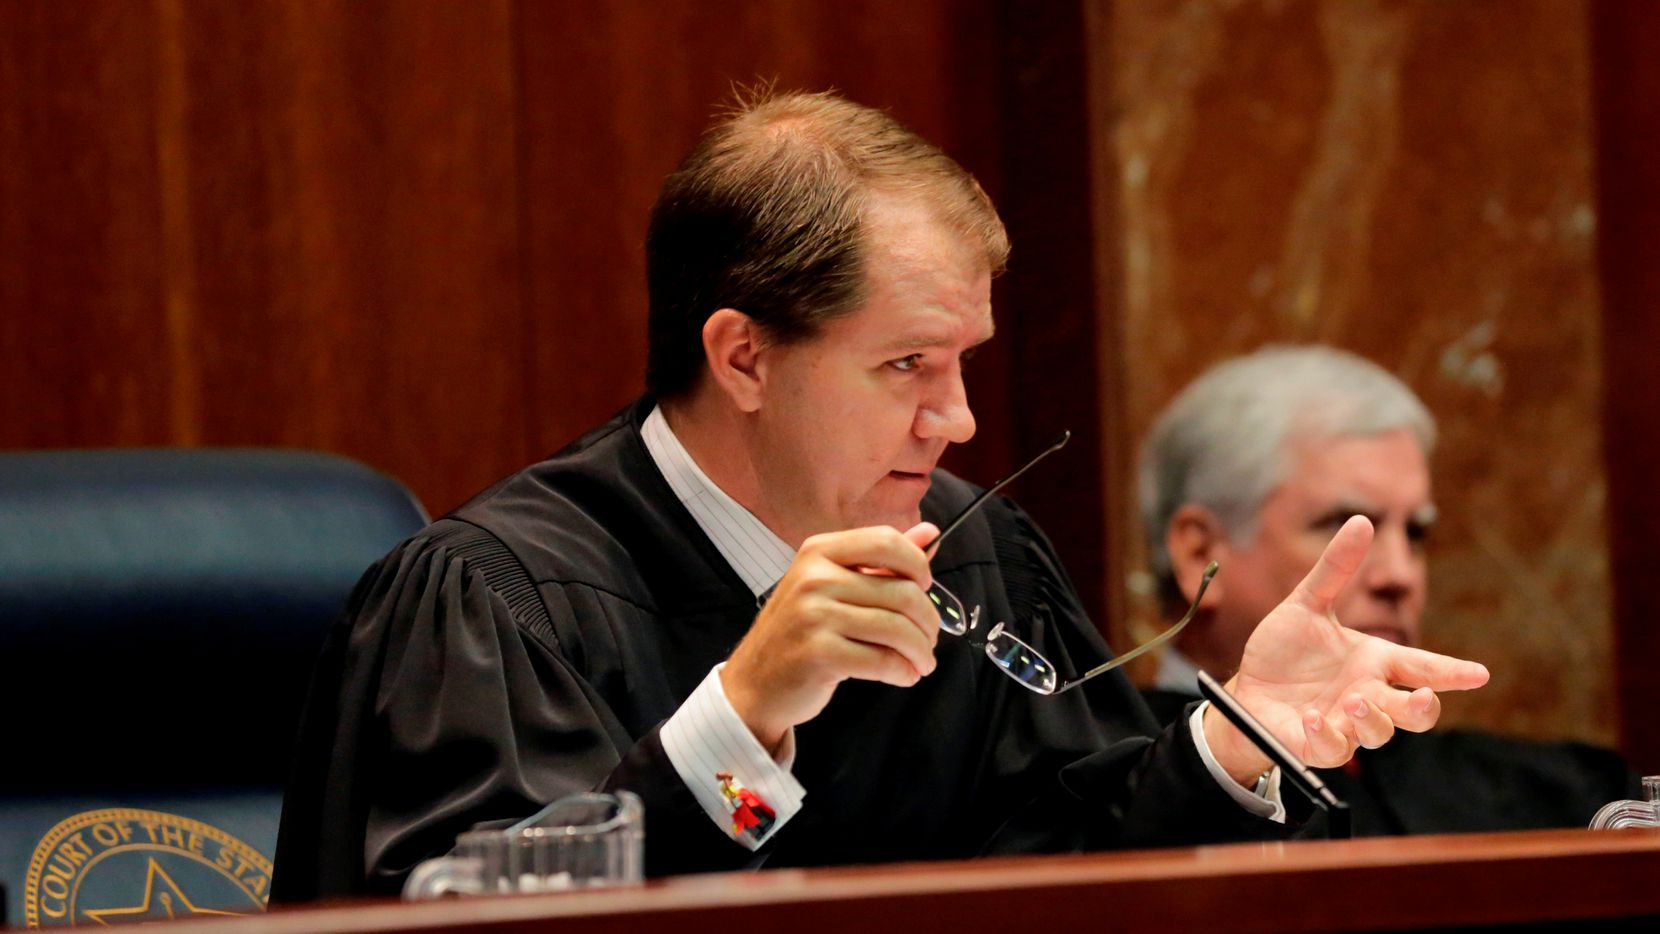 Texas Supreme Court Justice Don Willett (left) has drawn attention for his inclusion on a list of potential U.S. Supreme Court nominees by Republican presidential candidate Donald Trump. (Eric Gay/The Associated Press)